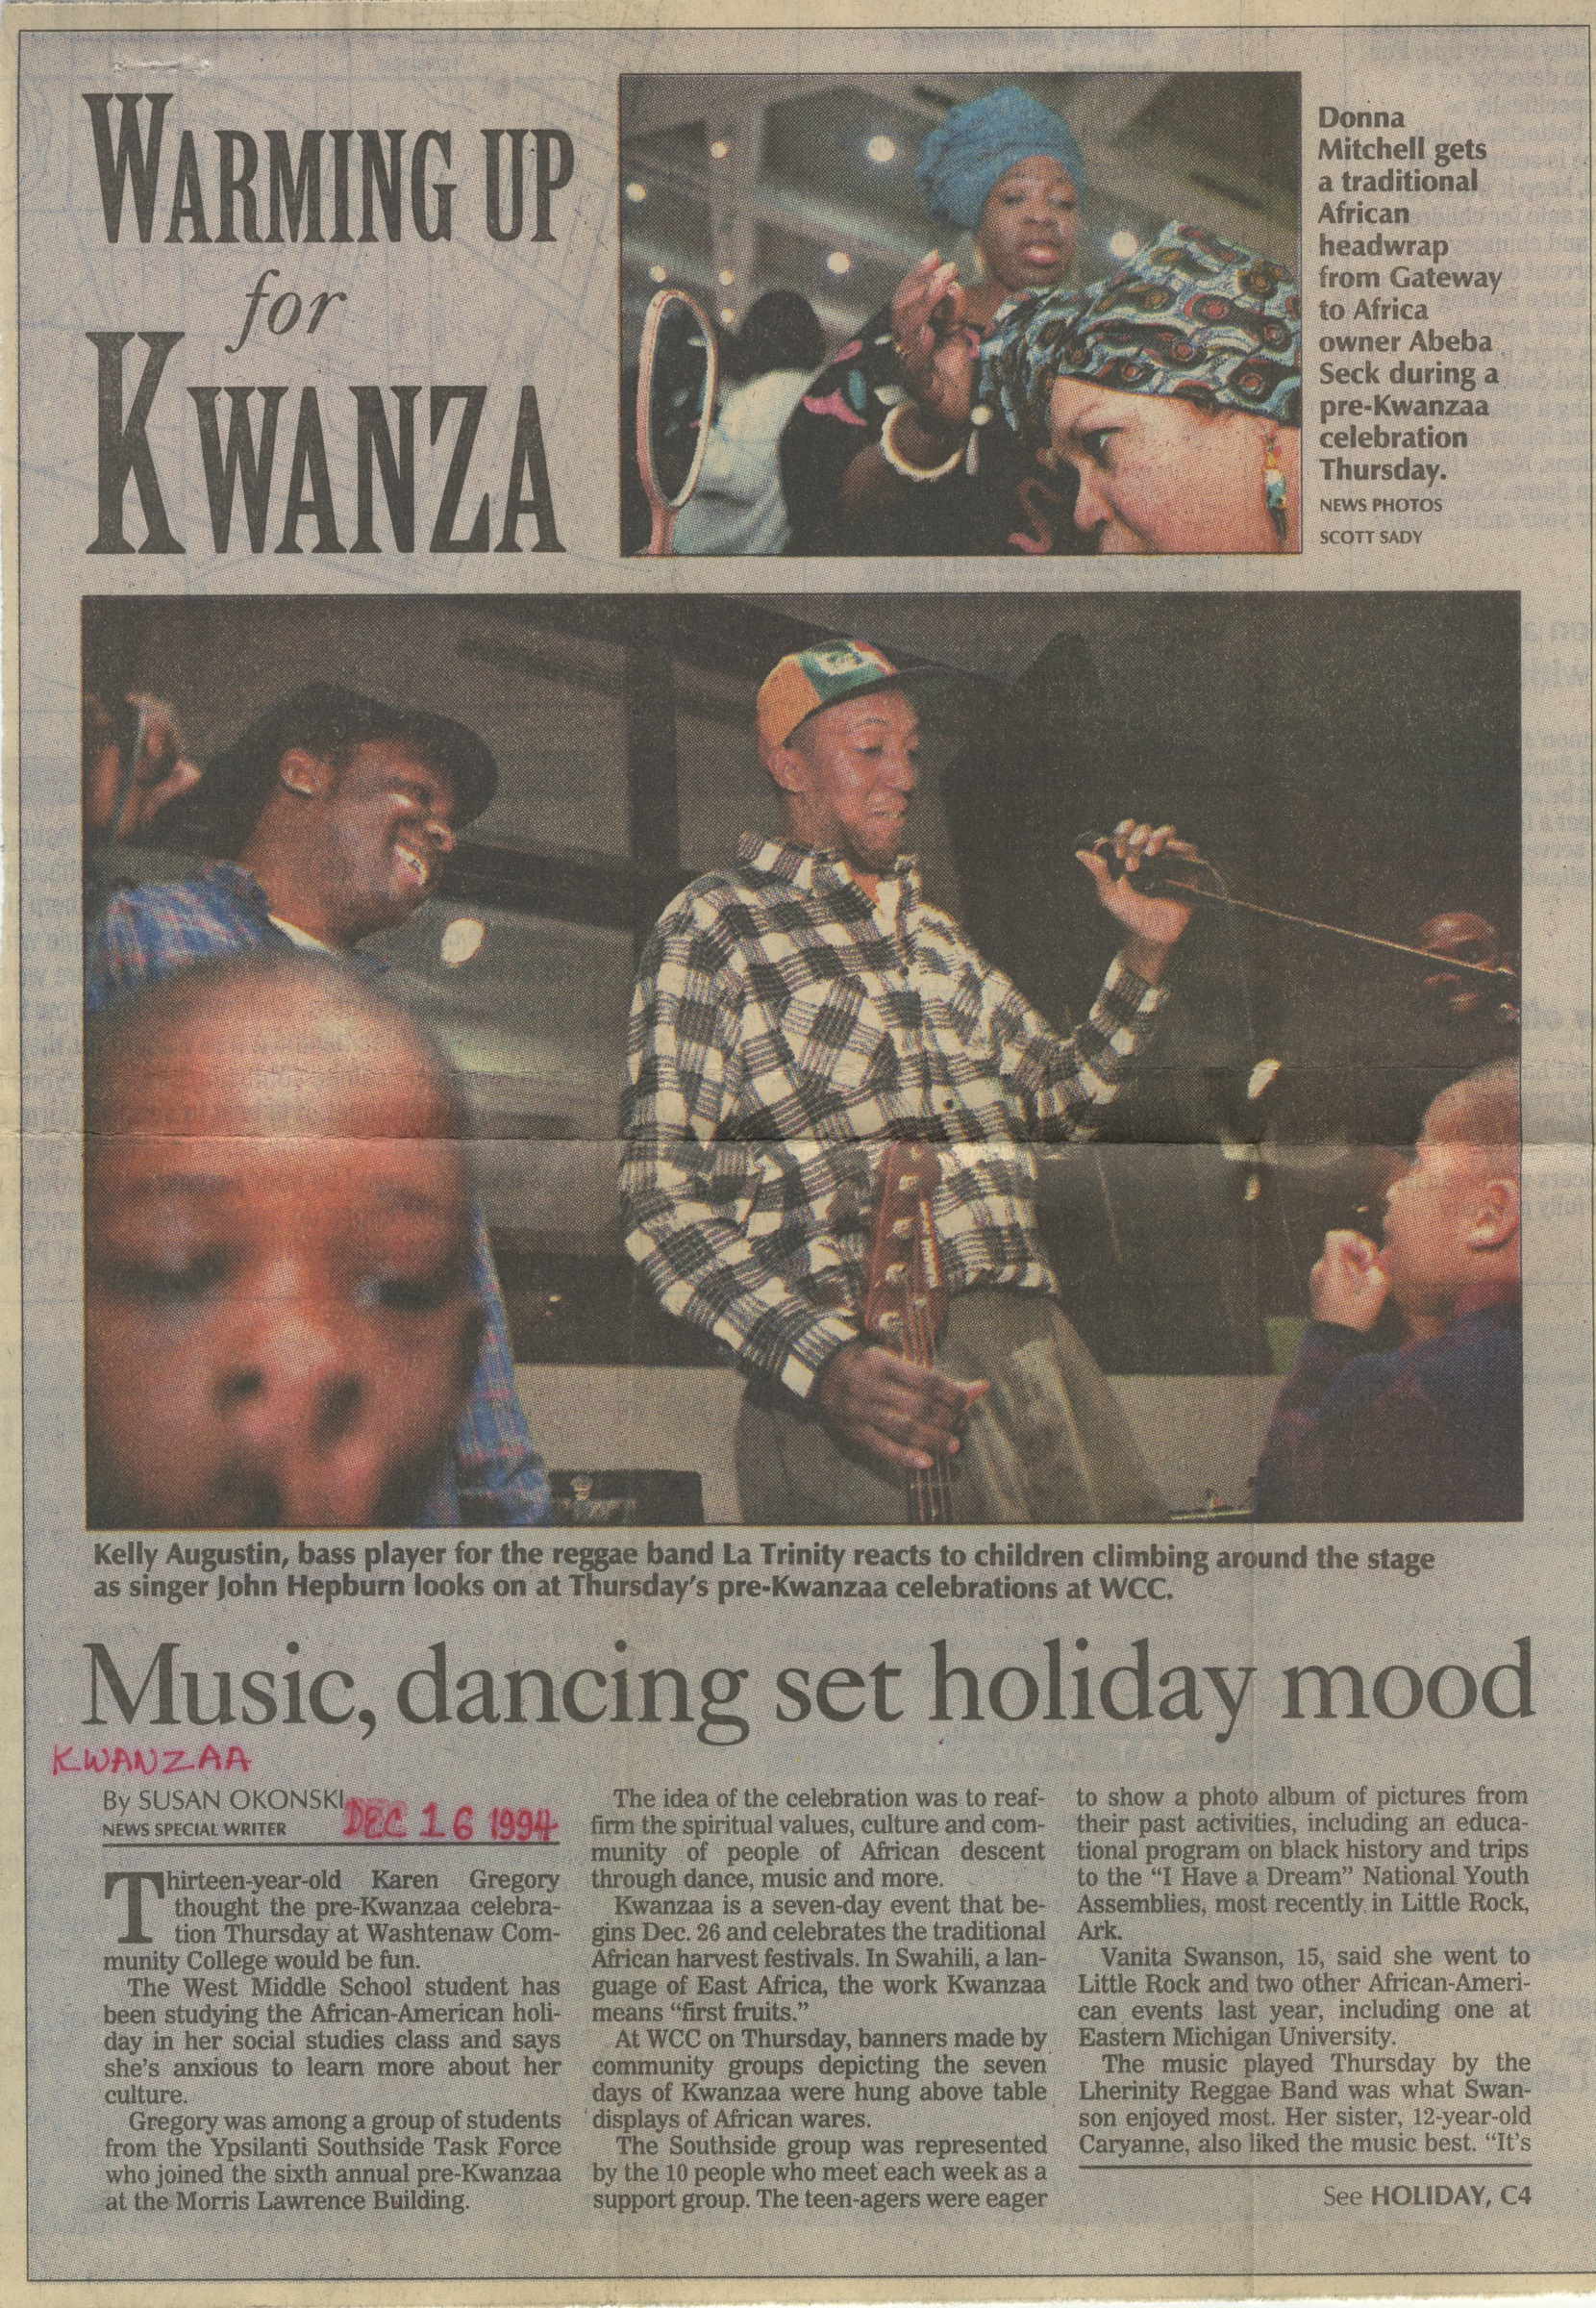 Warming Up For Kwanzaa image